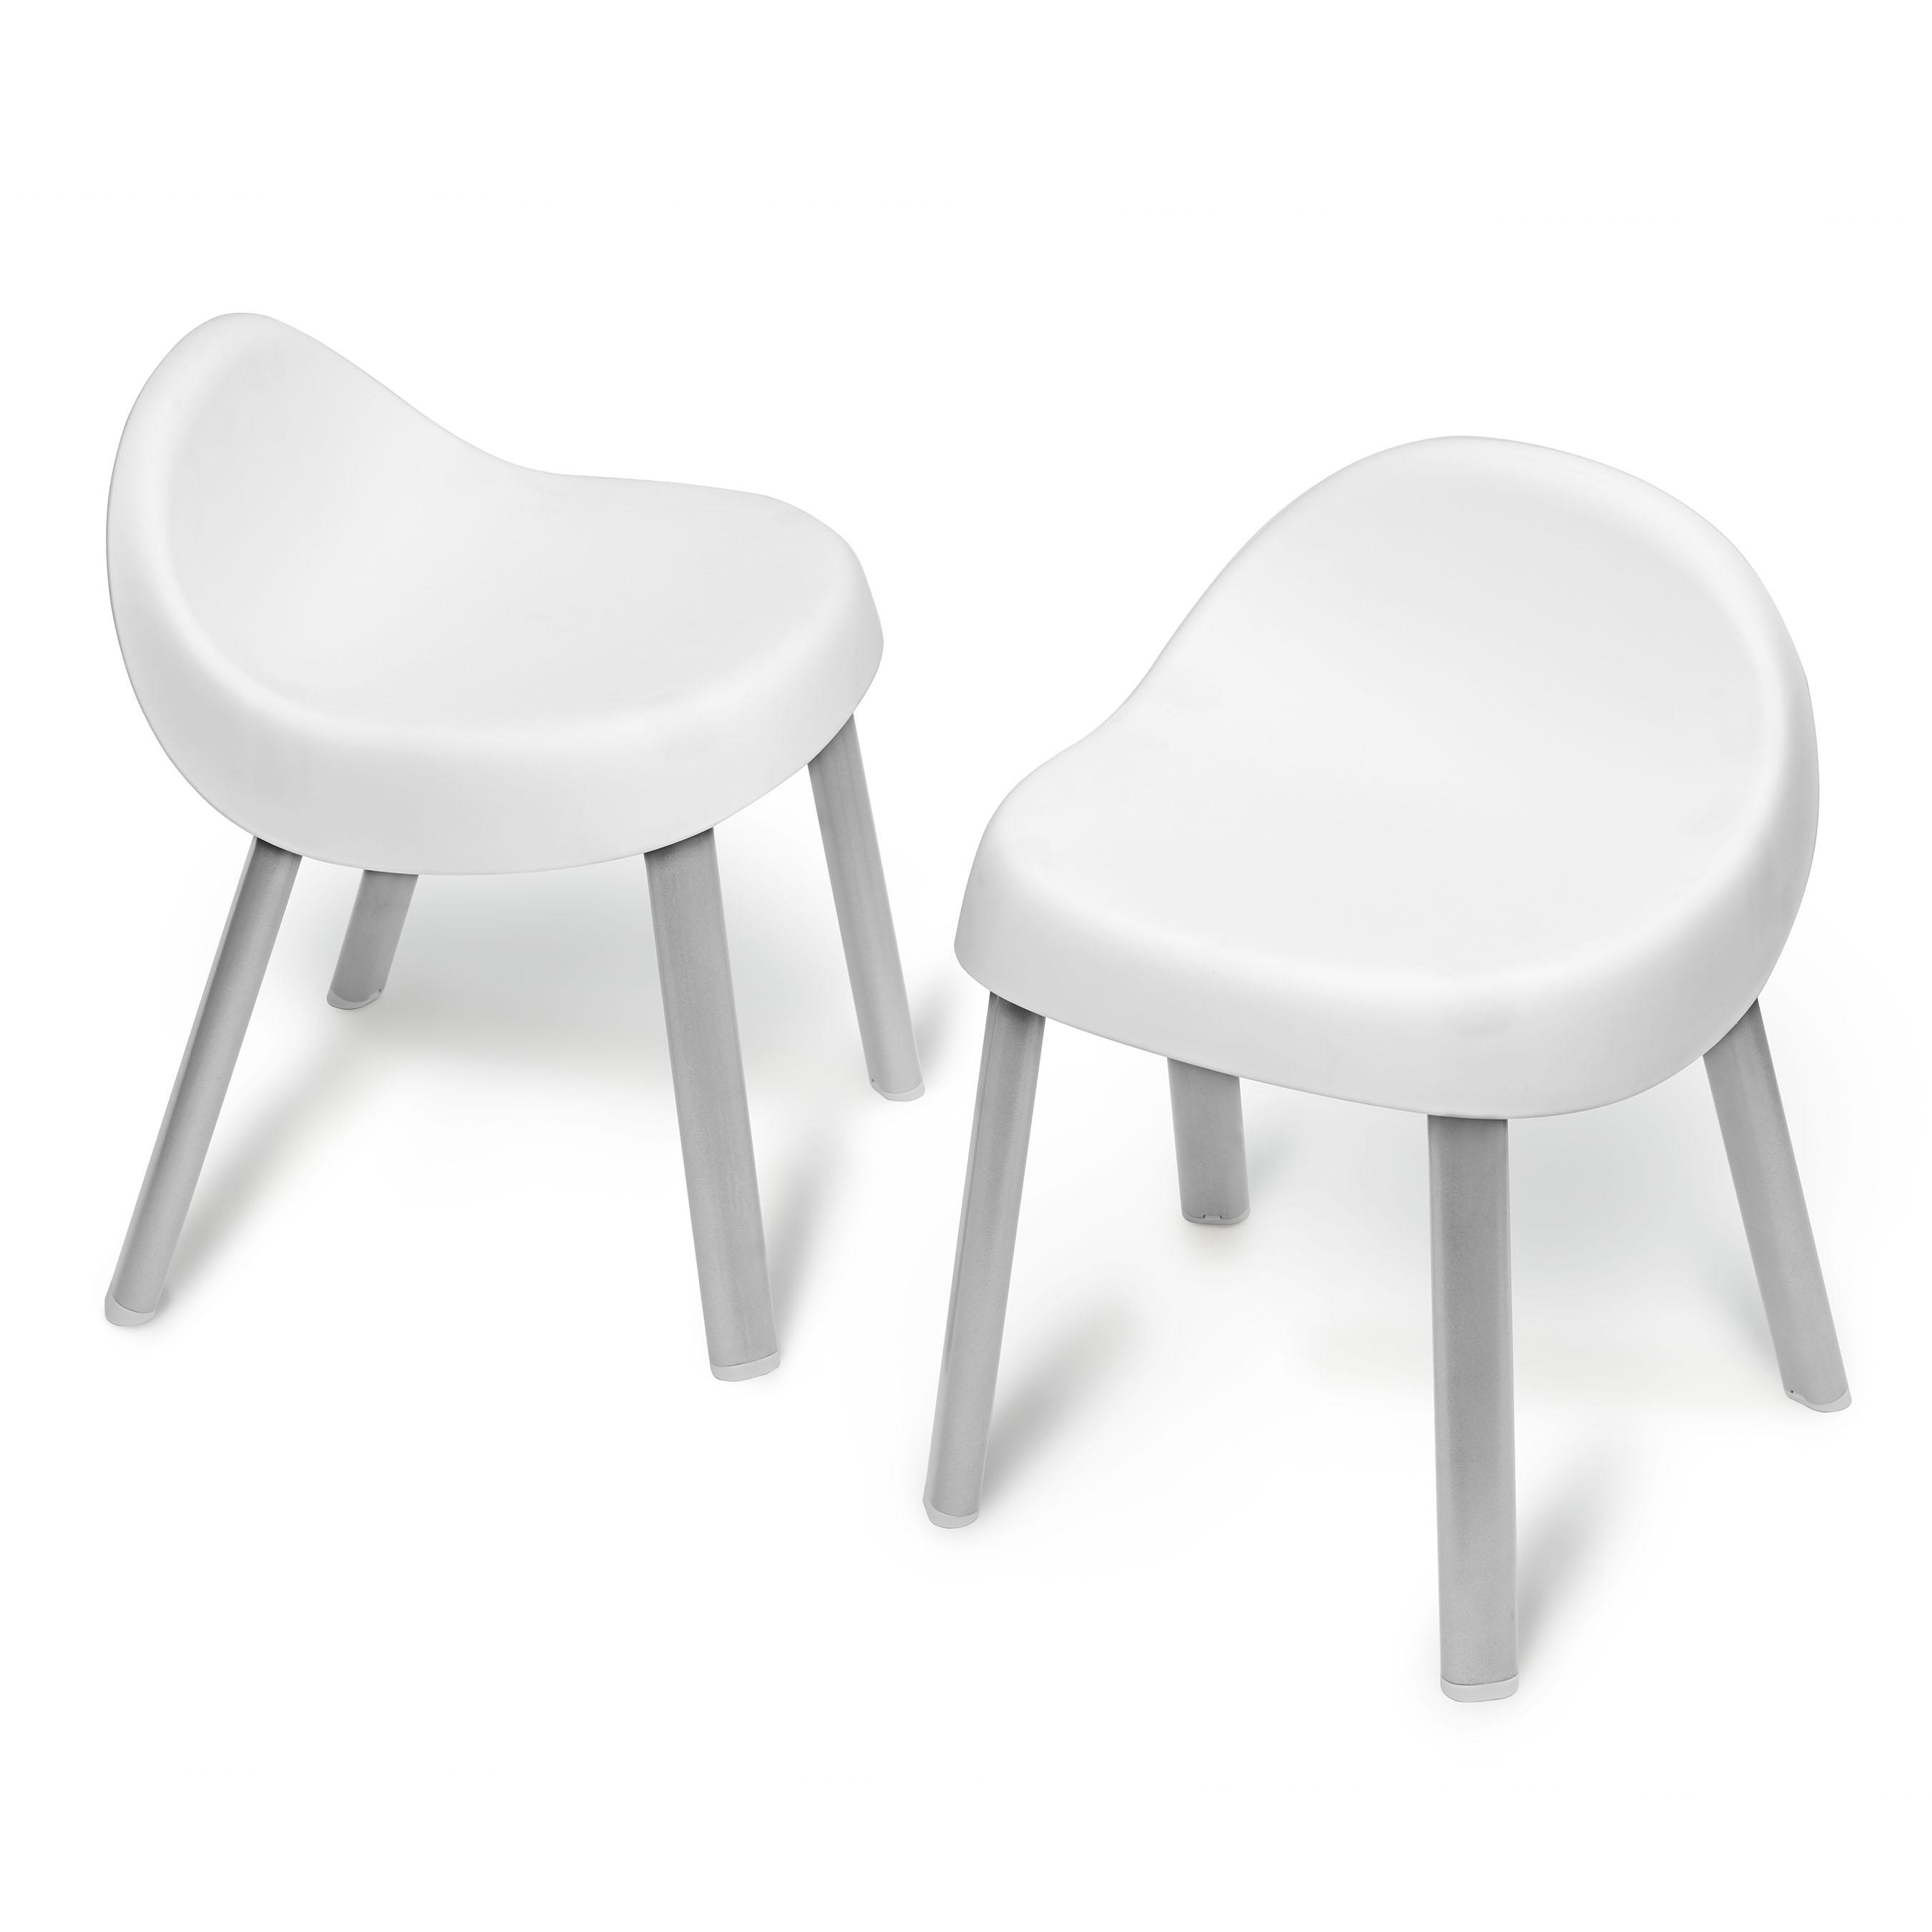 Chairs And More: Amazon.com : Skip Hop Explore & More Kids Chairs, White : Baby